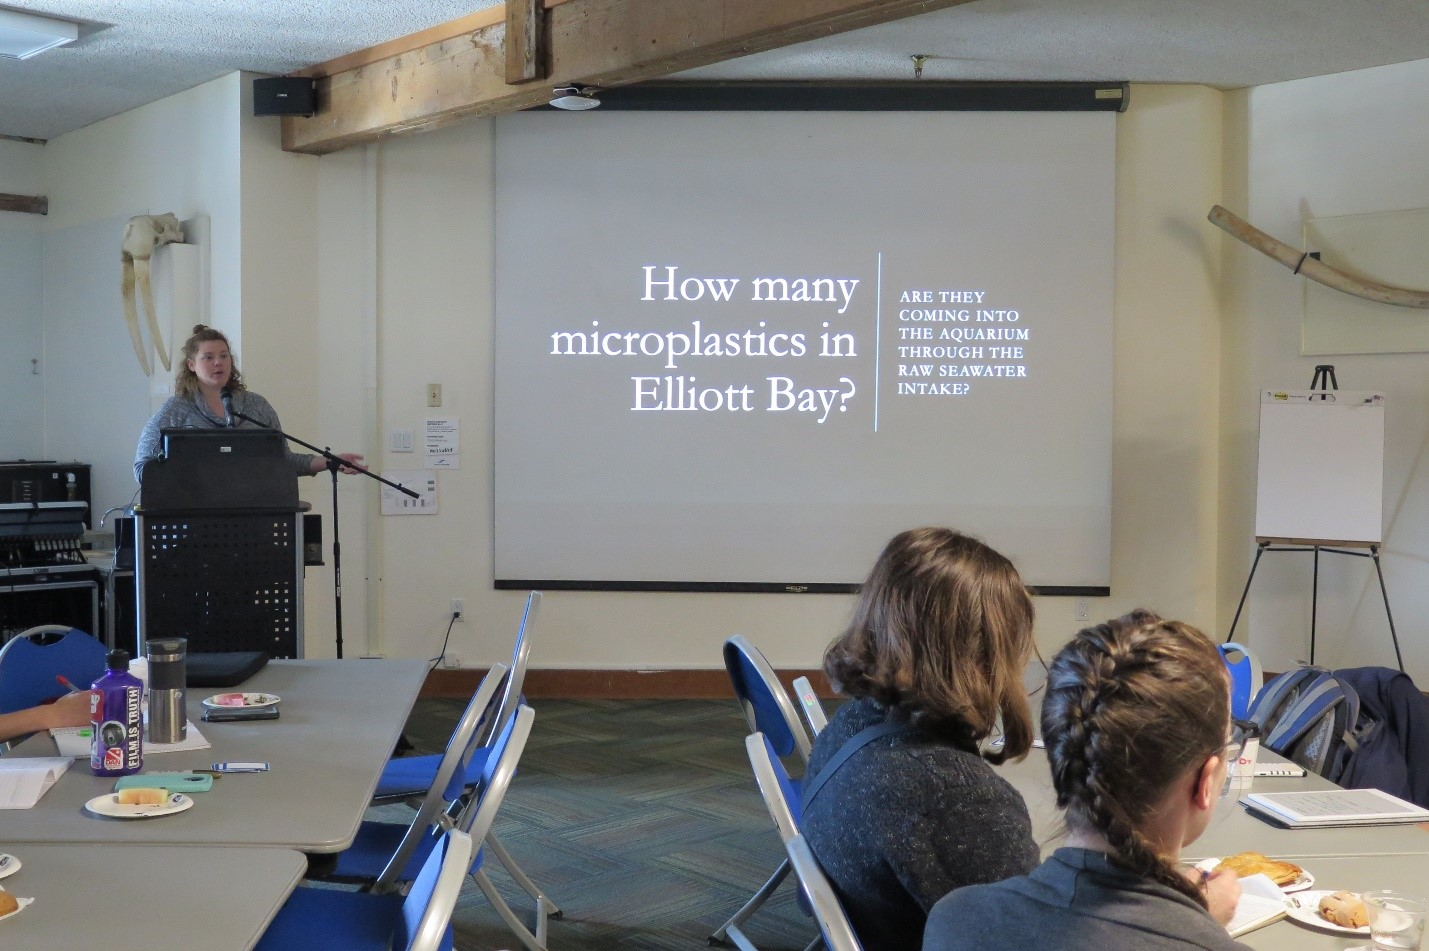 Seattle Aquarium's microplastics research assistant Laura La Beur presents our microplastics monitoring efforts and results.